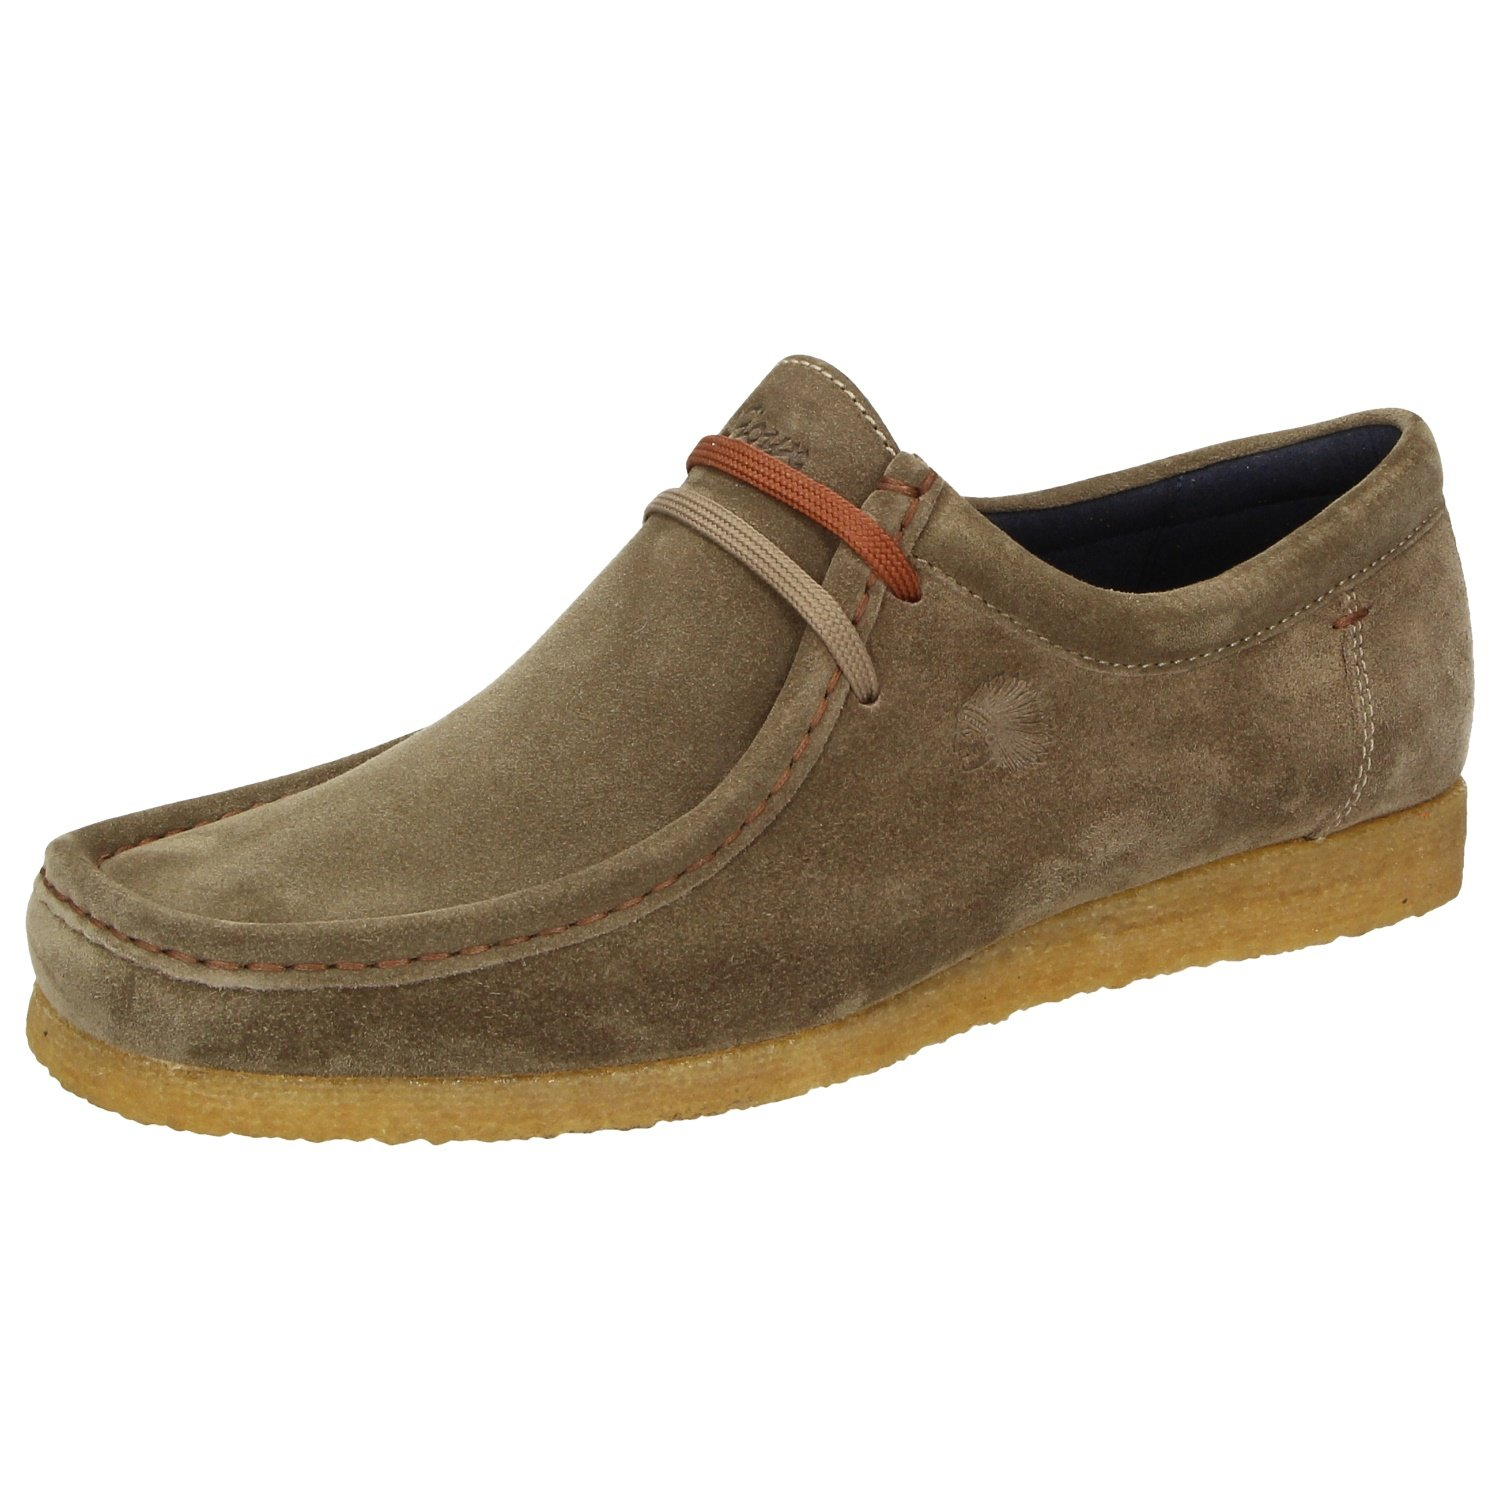 SiouxGrashopper-h-141 - Mocasines Hombre, Color Beige, Talla 49.5 EU: Amazon.es: Zapatos y complementos